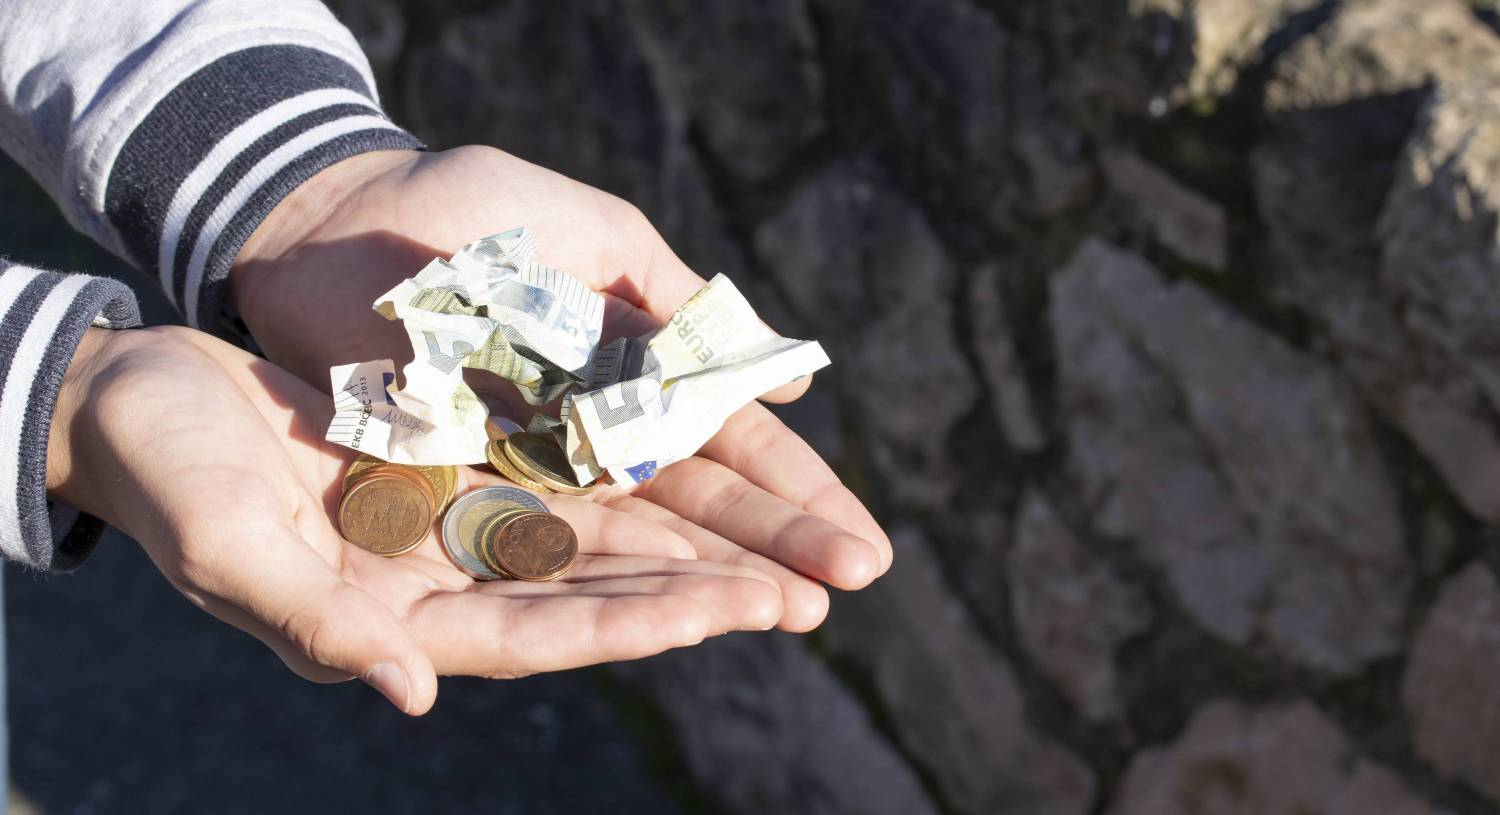 €13.35m back to Ireland as reserve fund money swap from EU to farmers continues for seventh year